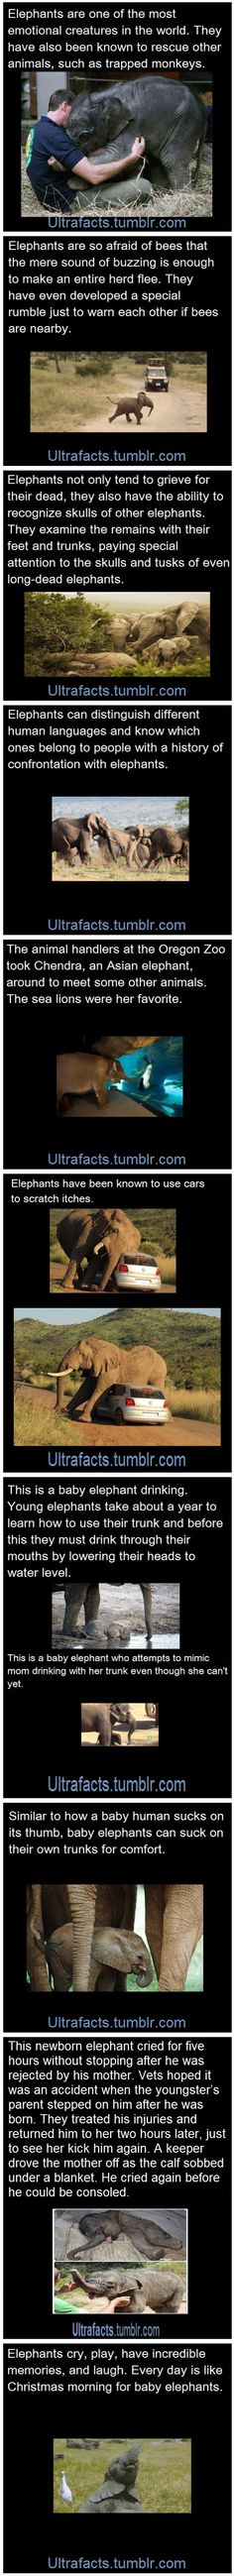 Elephants are seriously the cutes things ever!